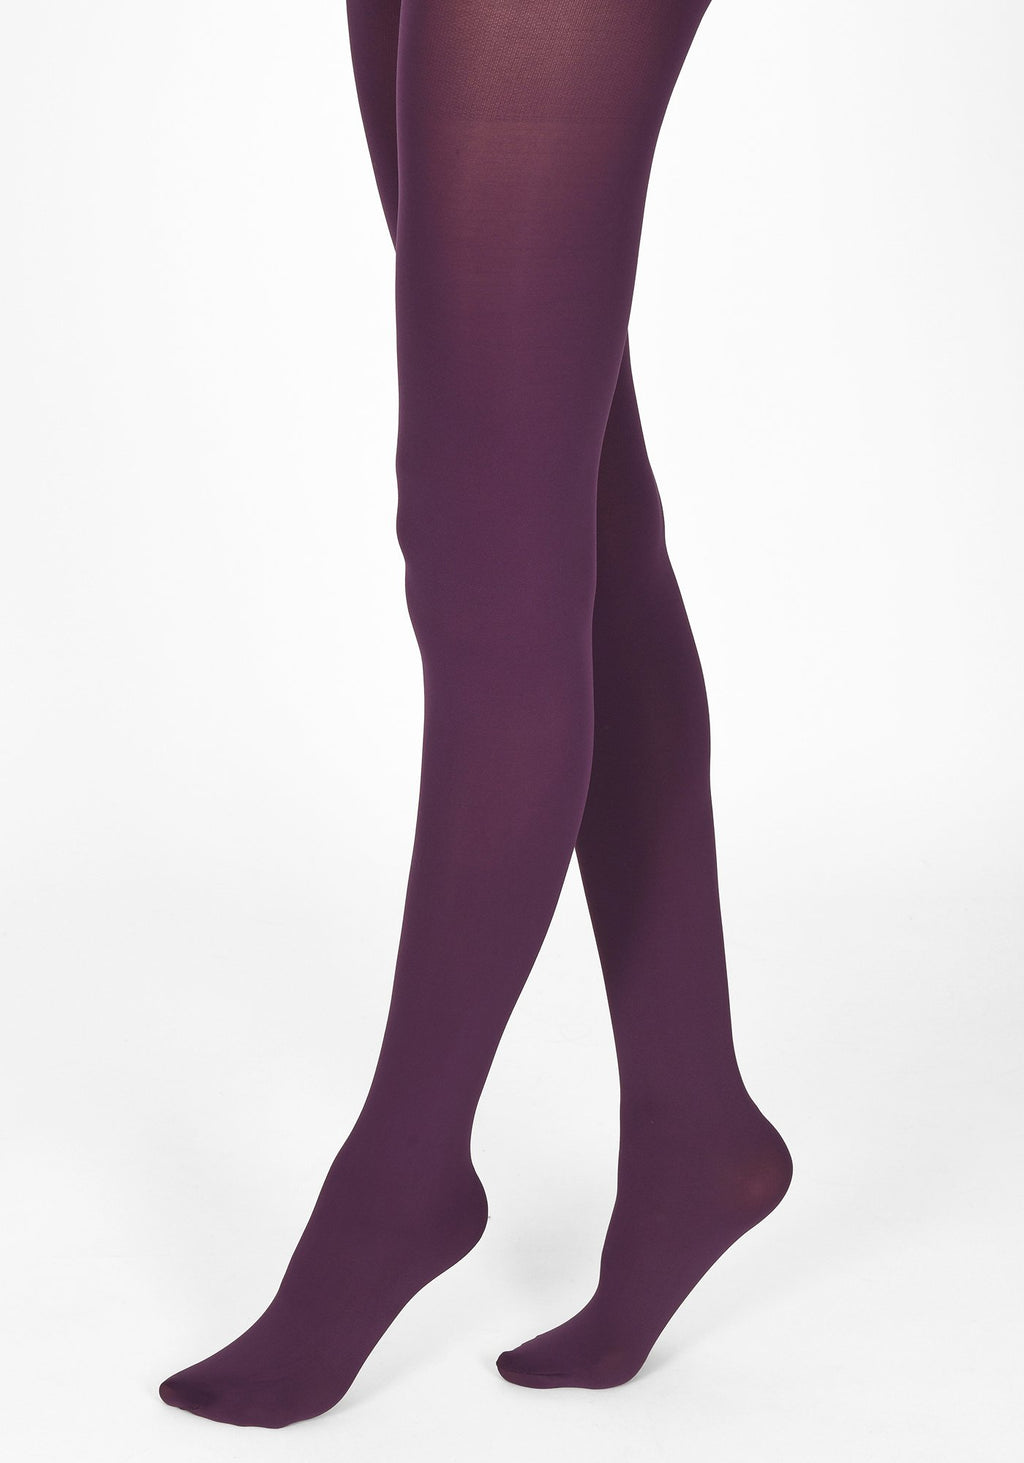 acai purple tights 100 denier 1